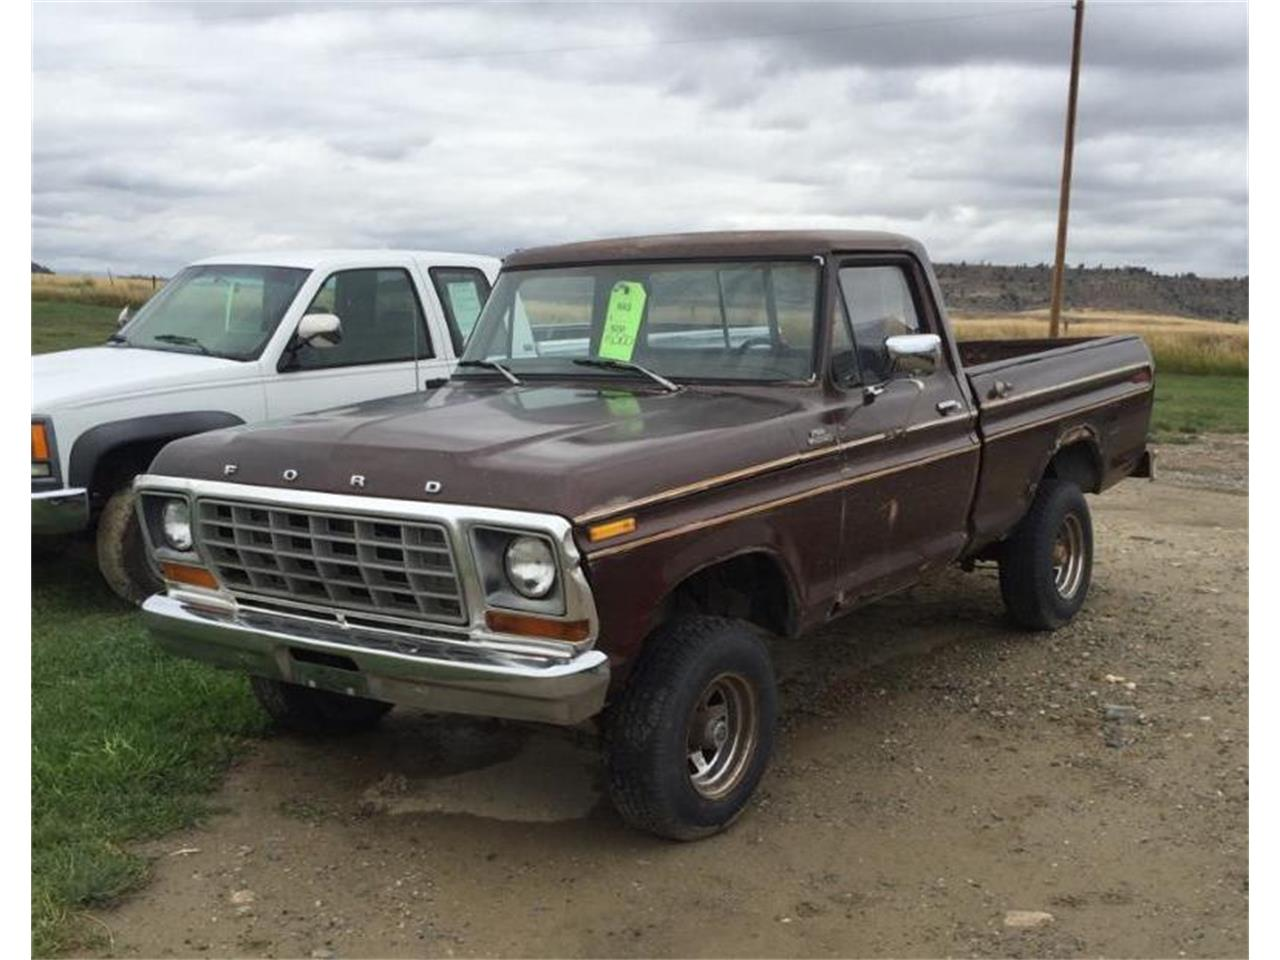 Large picture of 78 f150 l2go